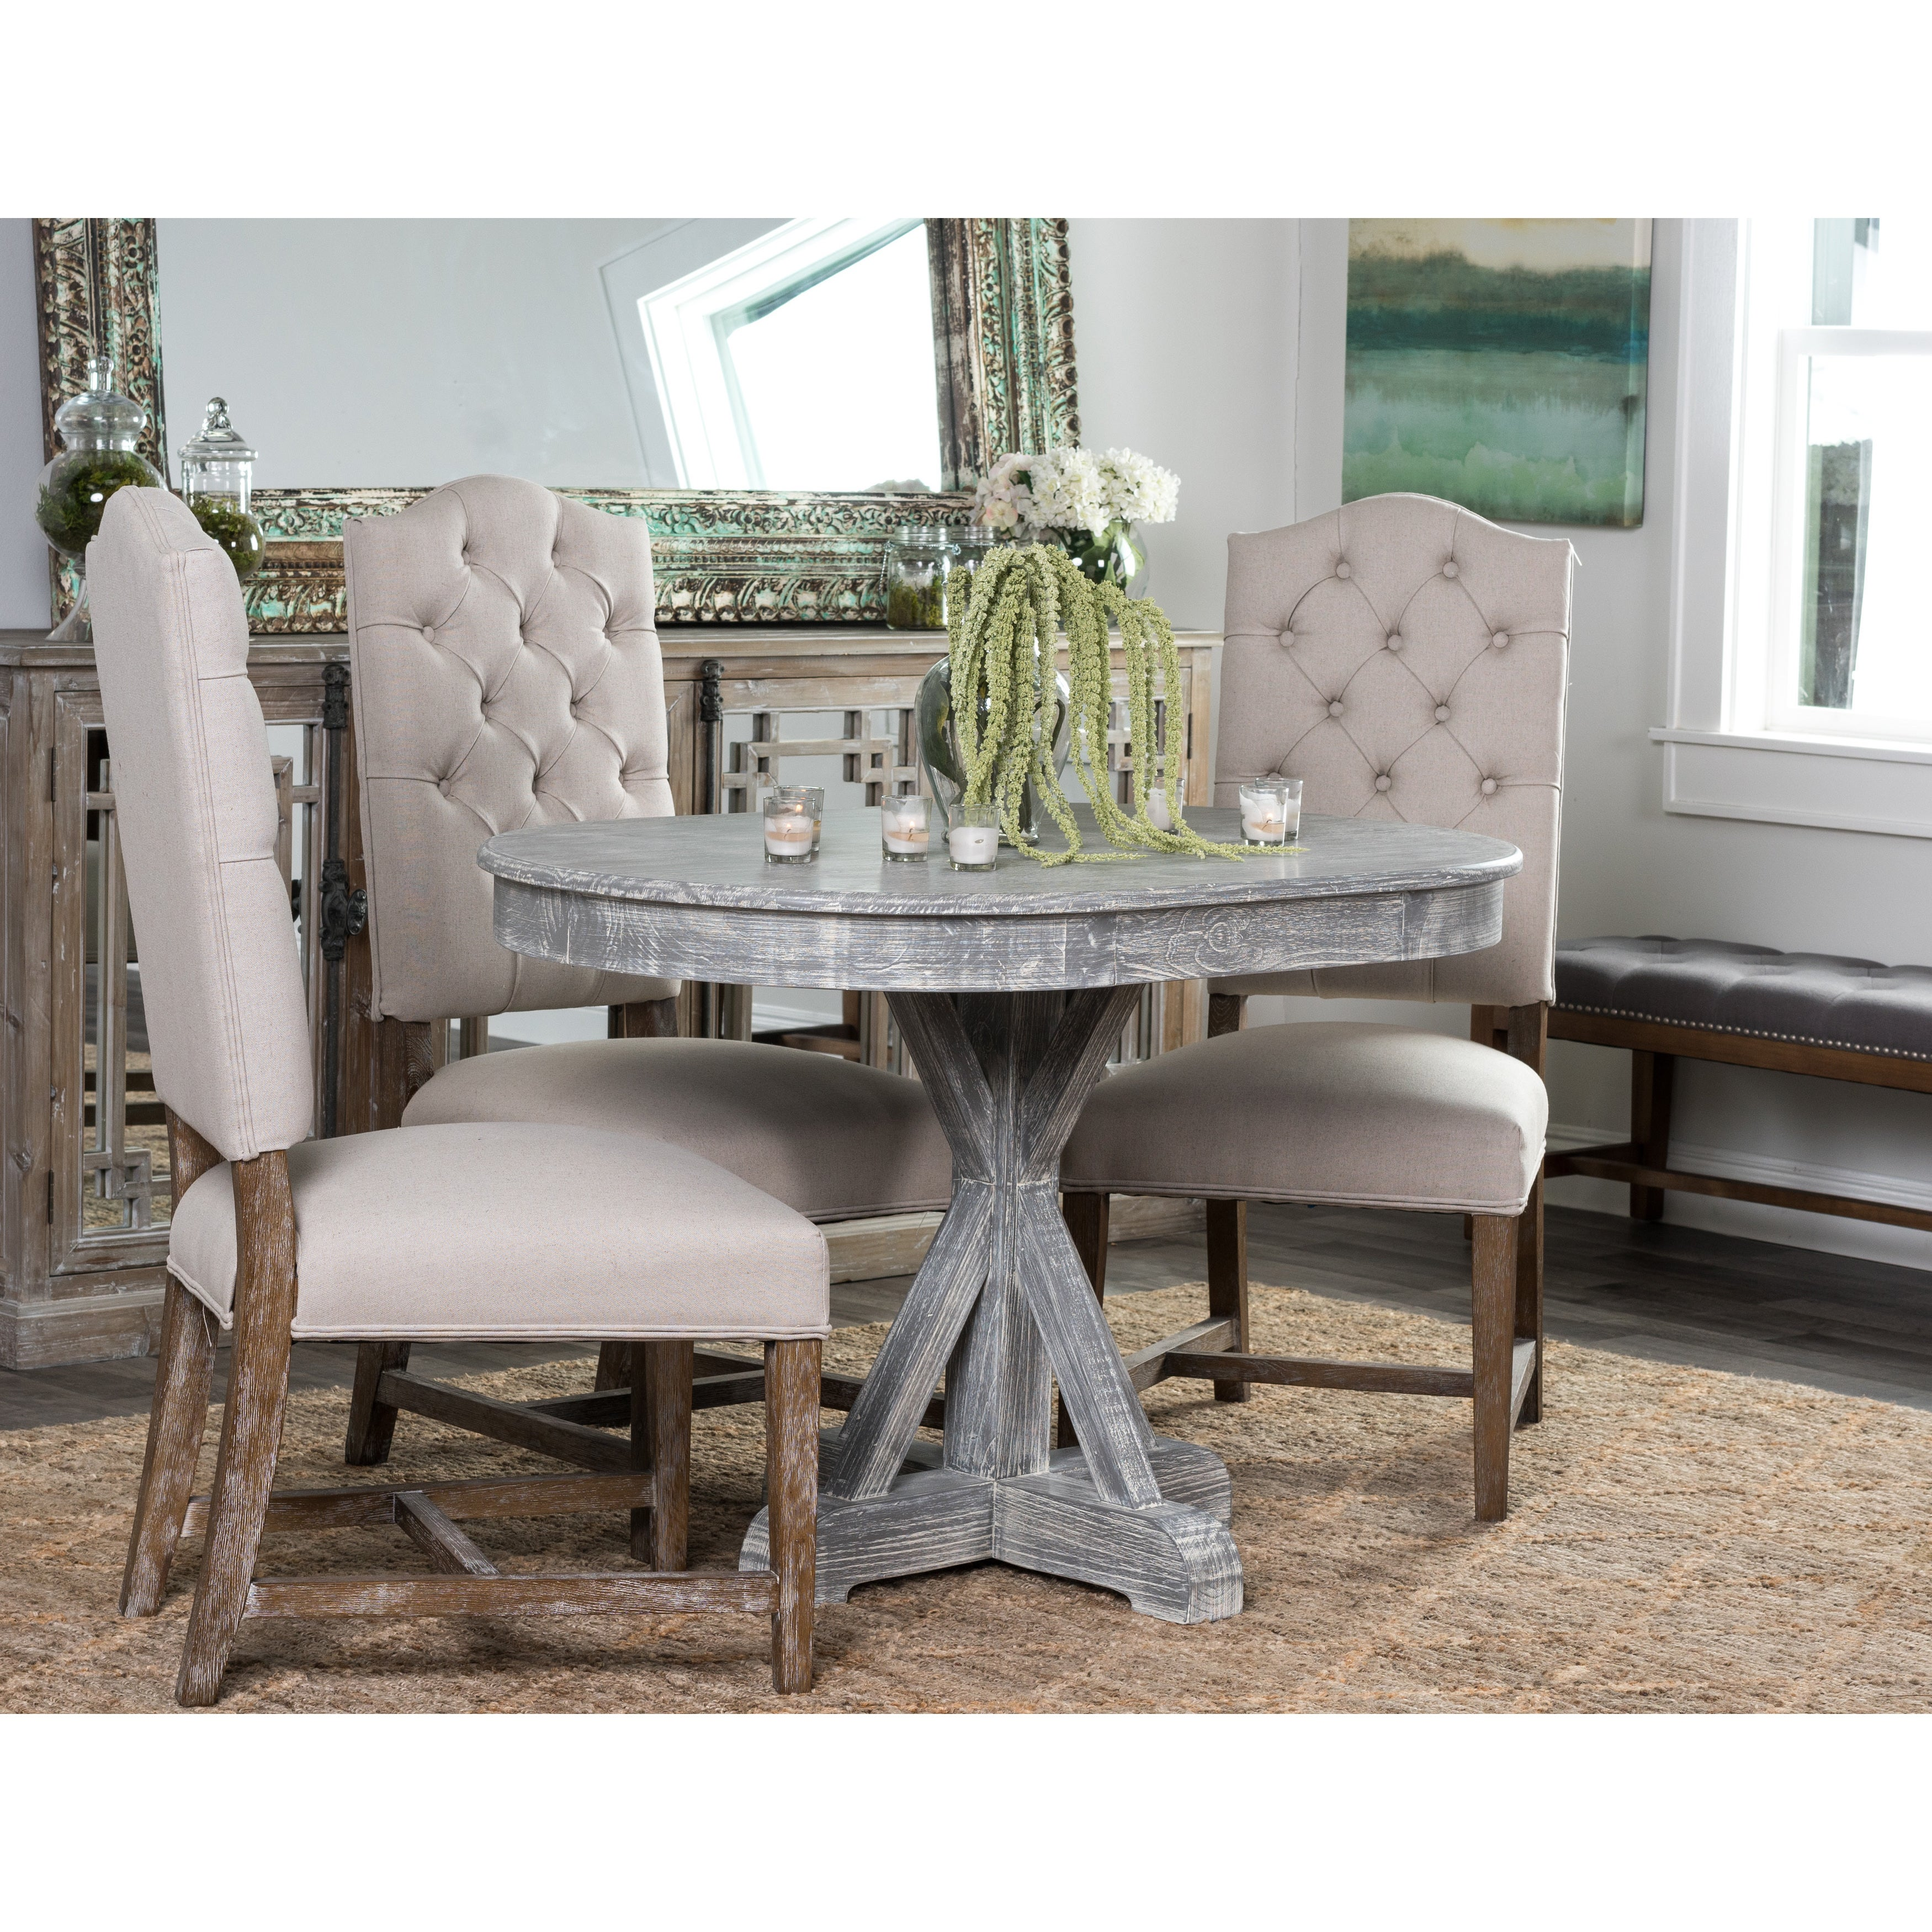 Rockie Wood 47 Inch Grey Oval Dining Table By Kosas Home   Free Shipping  Today   Overstock   18350939